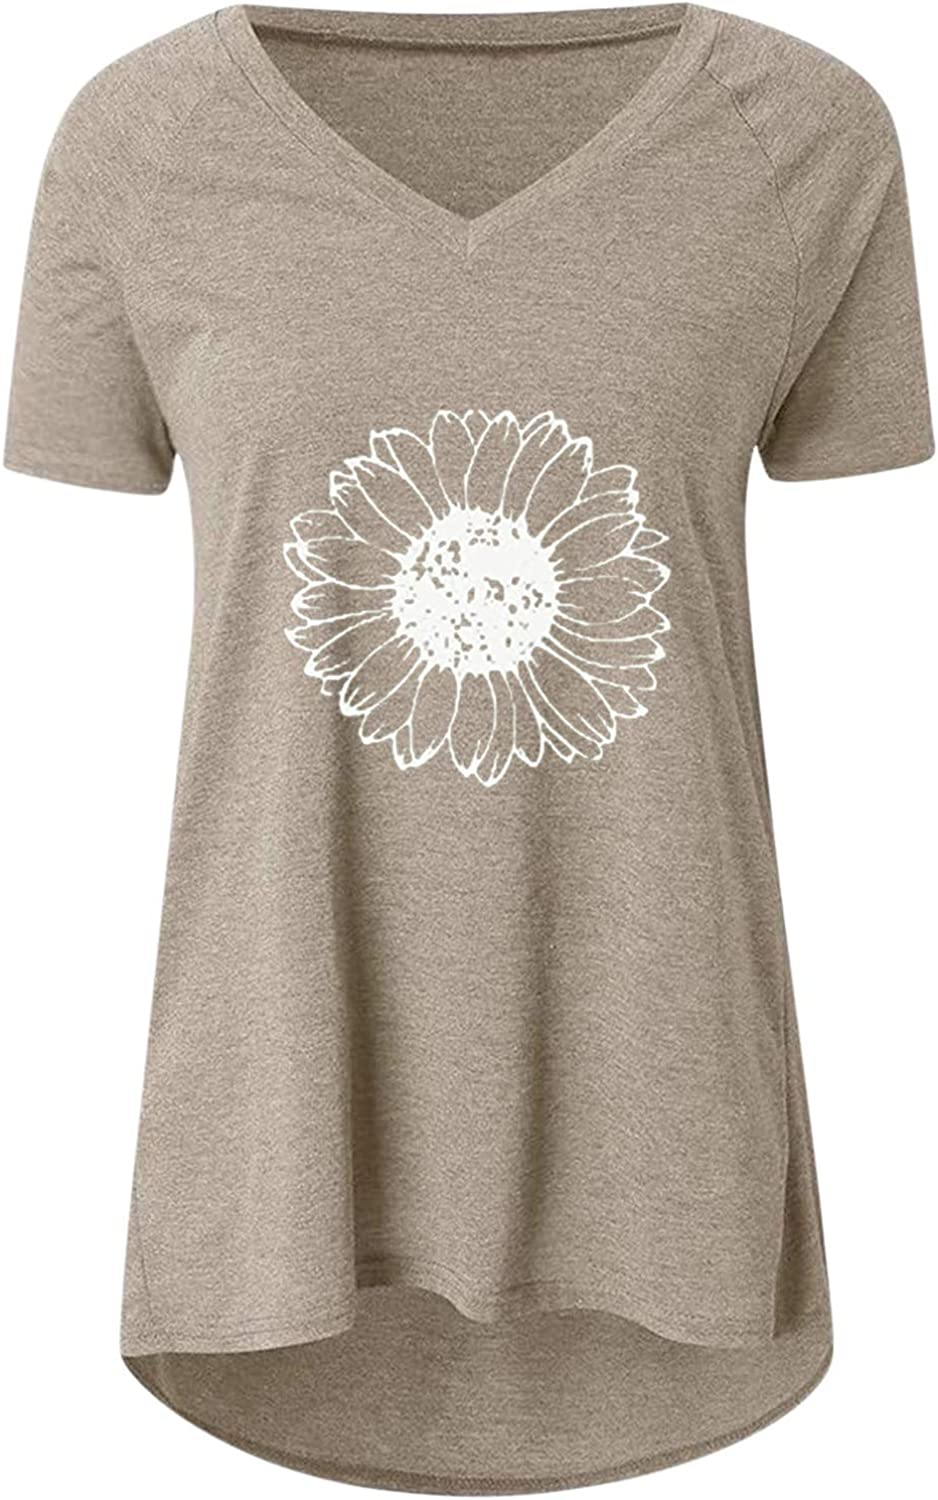 Aukbays T-Shirts for Women Chrysanthemum Print Short Sleeve Tops Summer V Neck Loose Fit Causal Tees Shirts Blouses